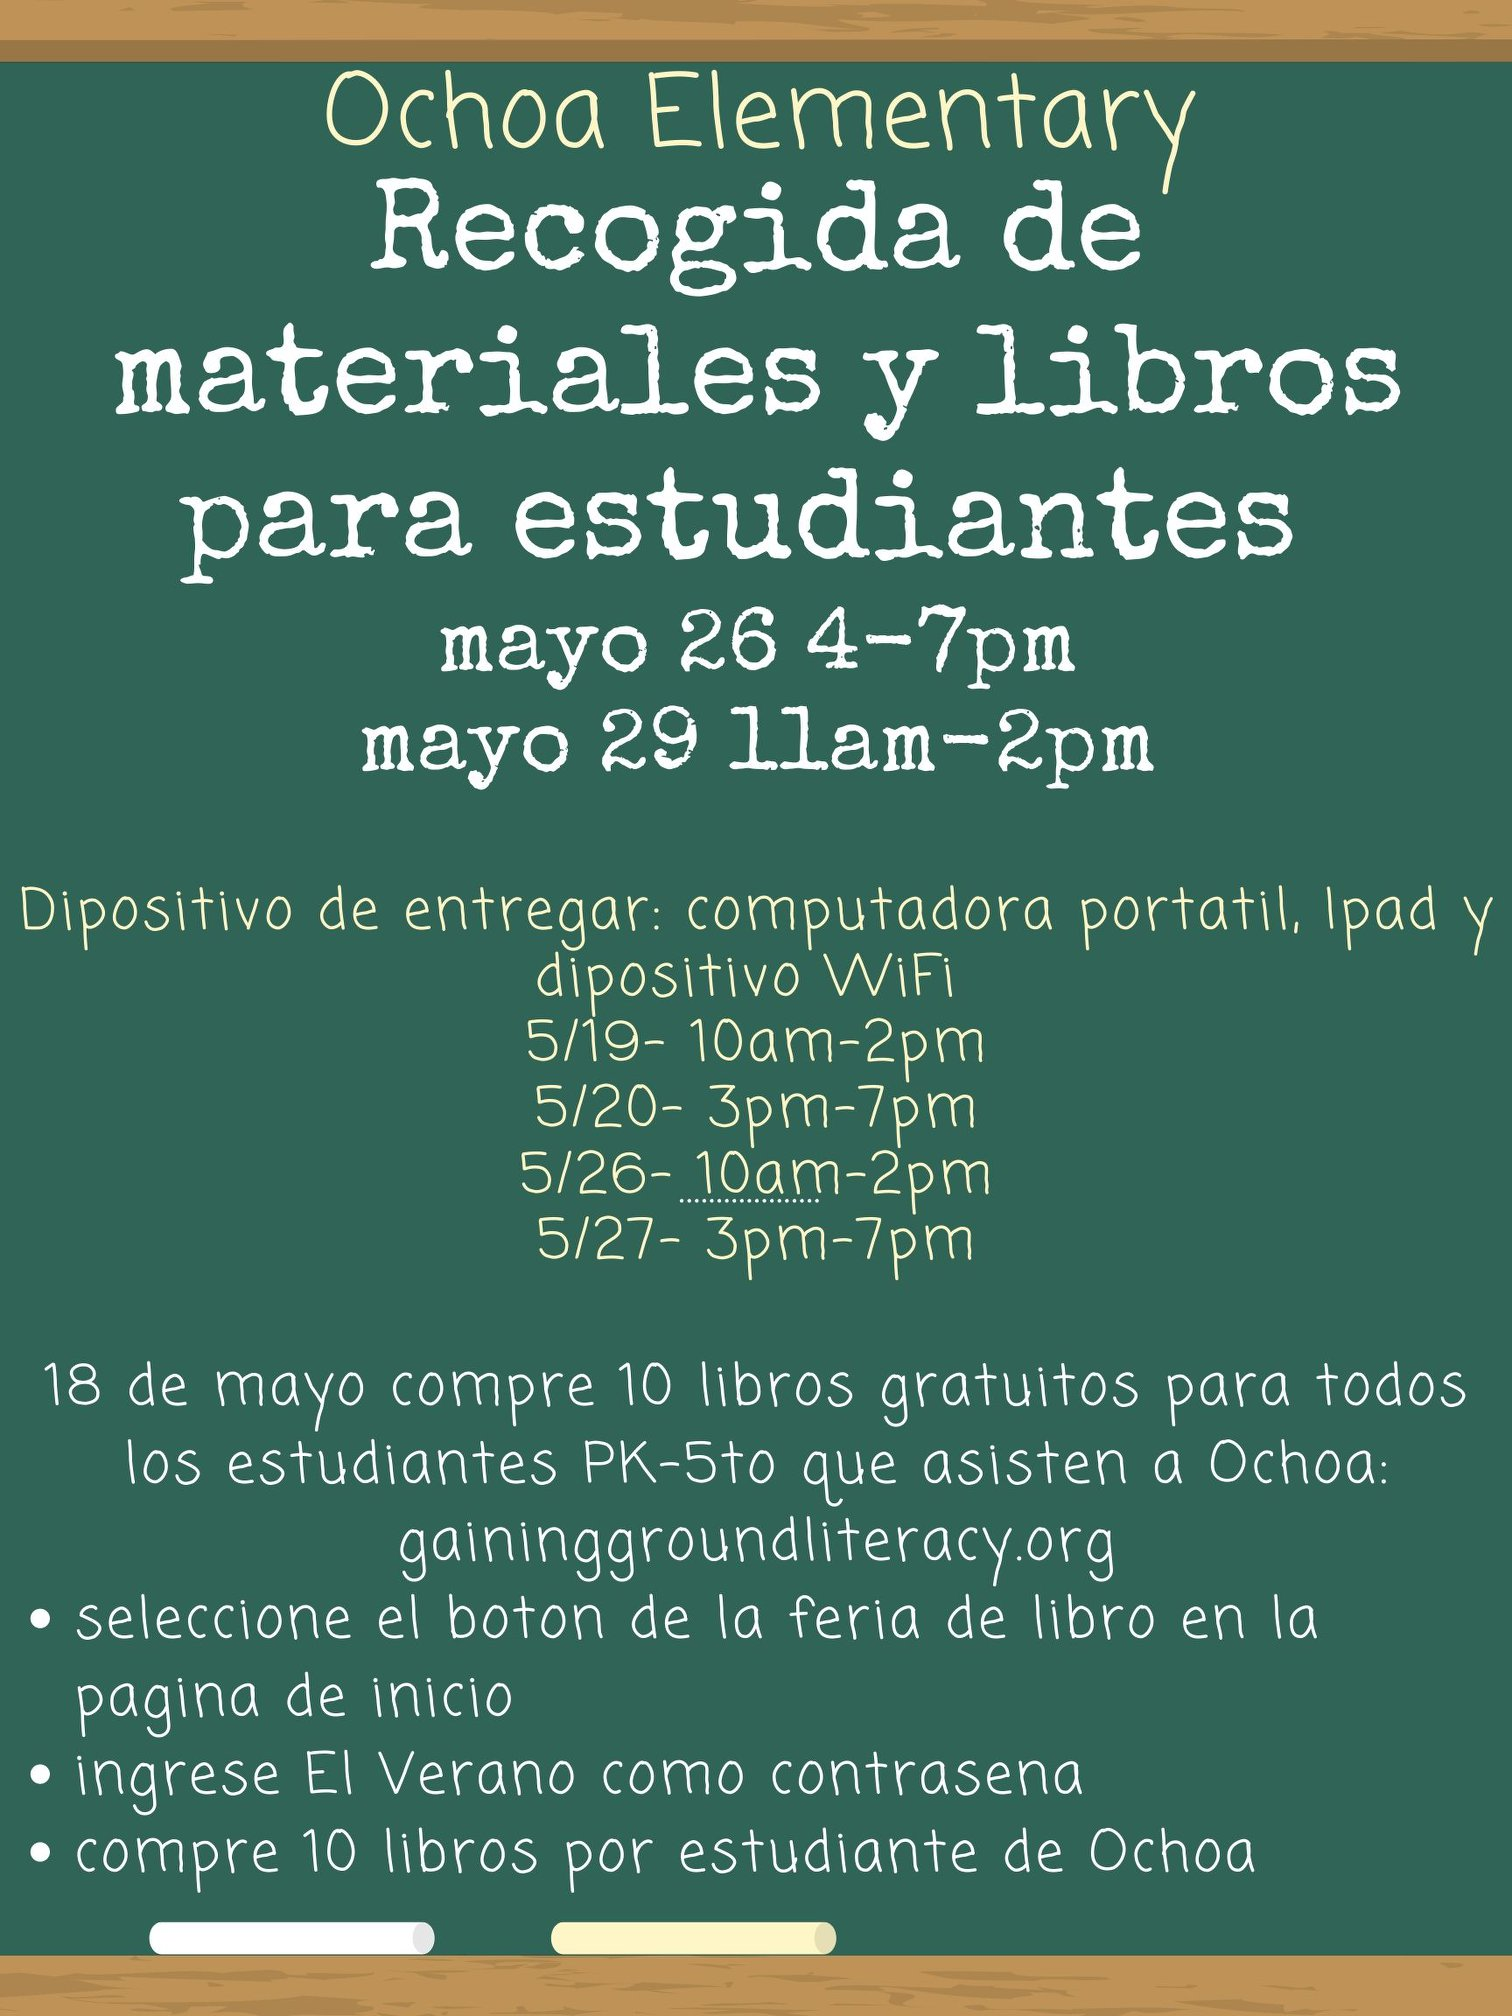 Ellen Ochoa Elementary will allow students to pick up their belongings and pickup books for the summer on May 26, frm 4 to 7 p.m.,and May 29, from 11 a.m. to 2 p.m.  On May 18, students can shop for 10 free books for the summer. See graphic below for instructions.